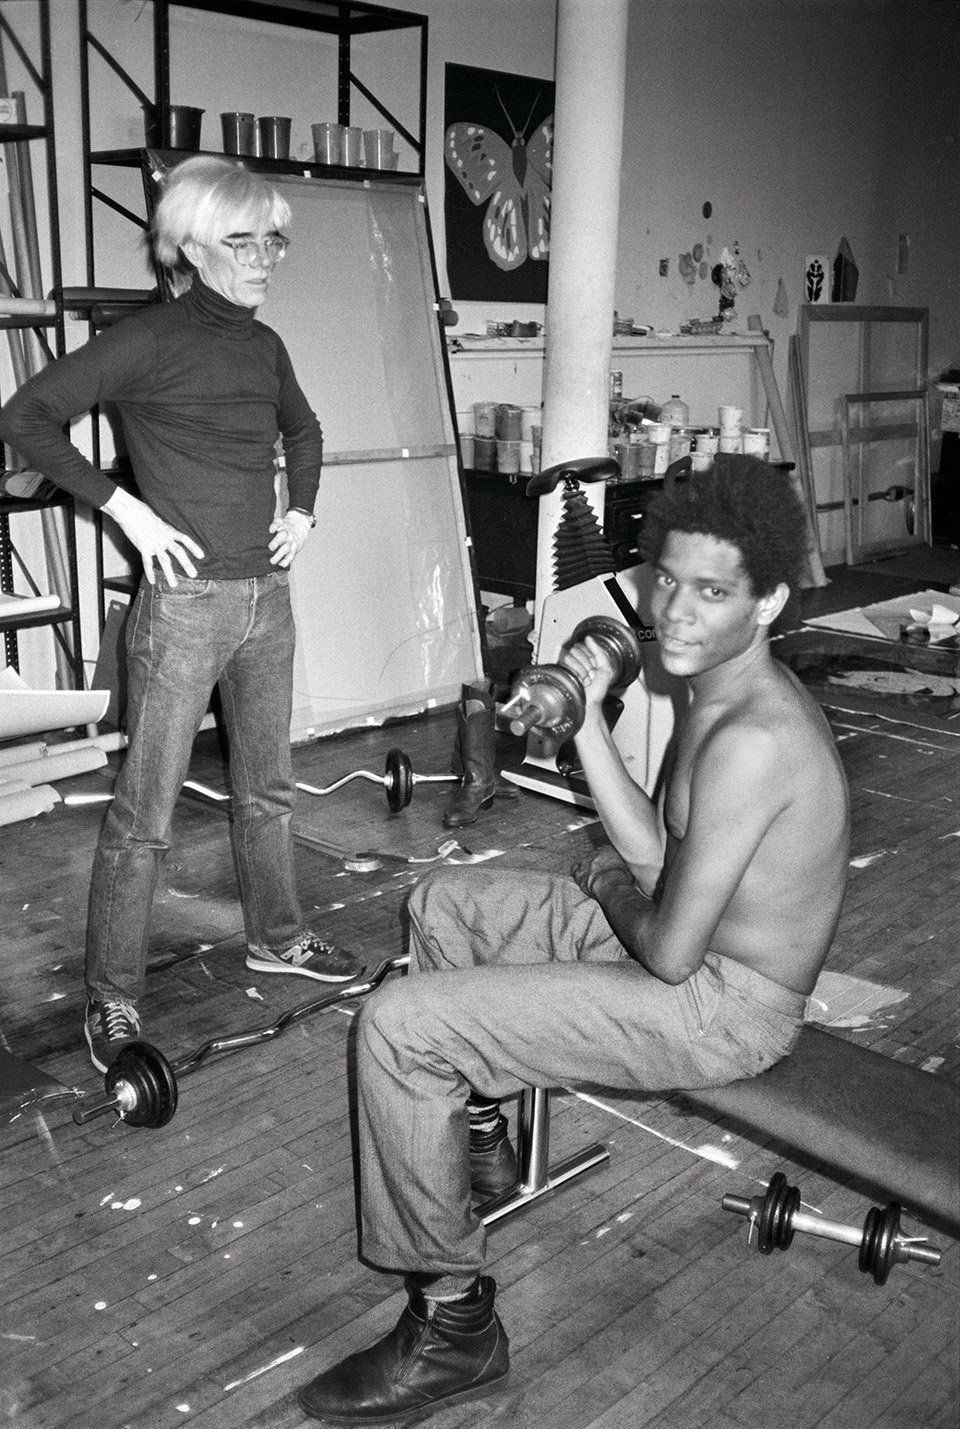 VICE - Intimate, Unseen Photos Chronicle the Complex Friendship of Andy Warhol and Jean-Michel Basquiat